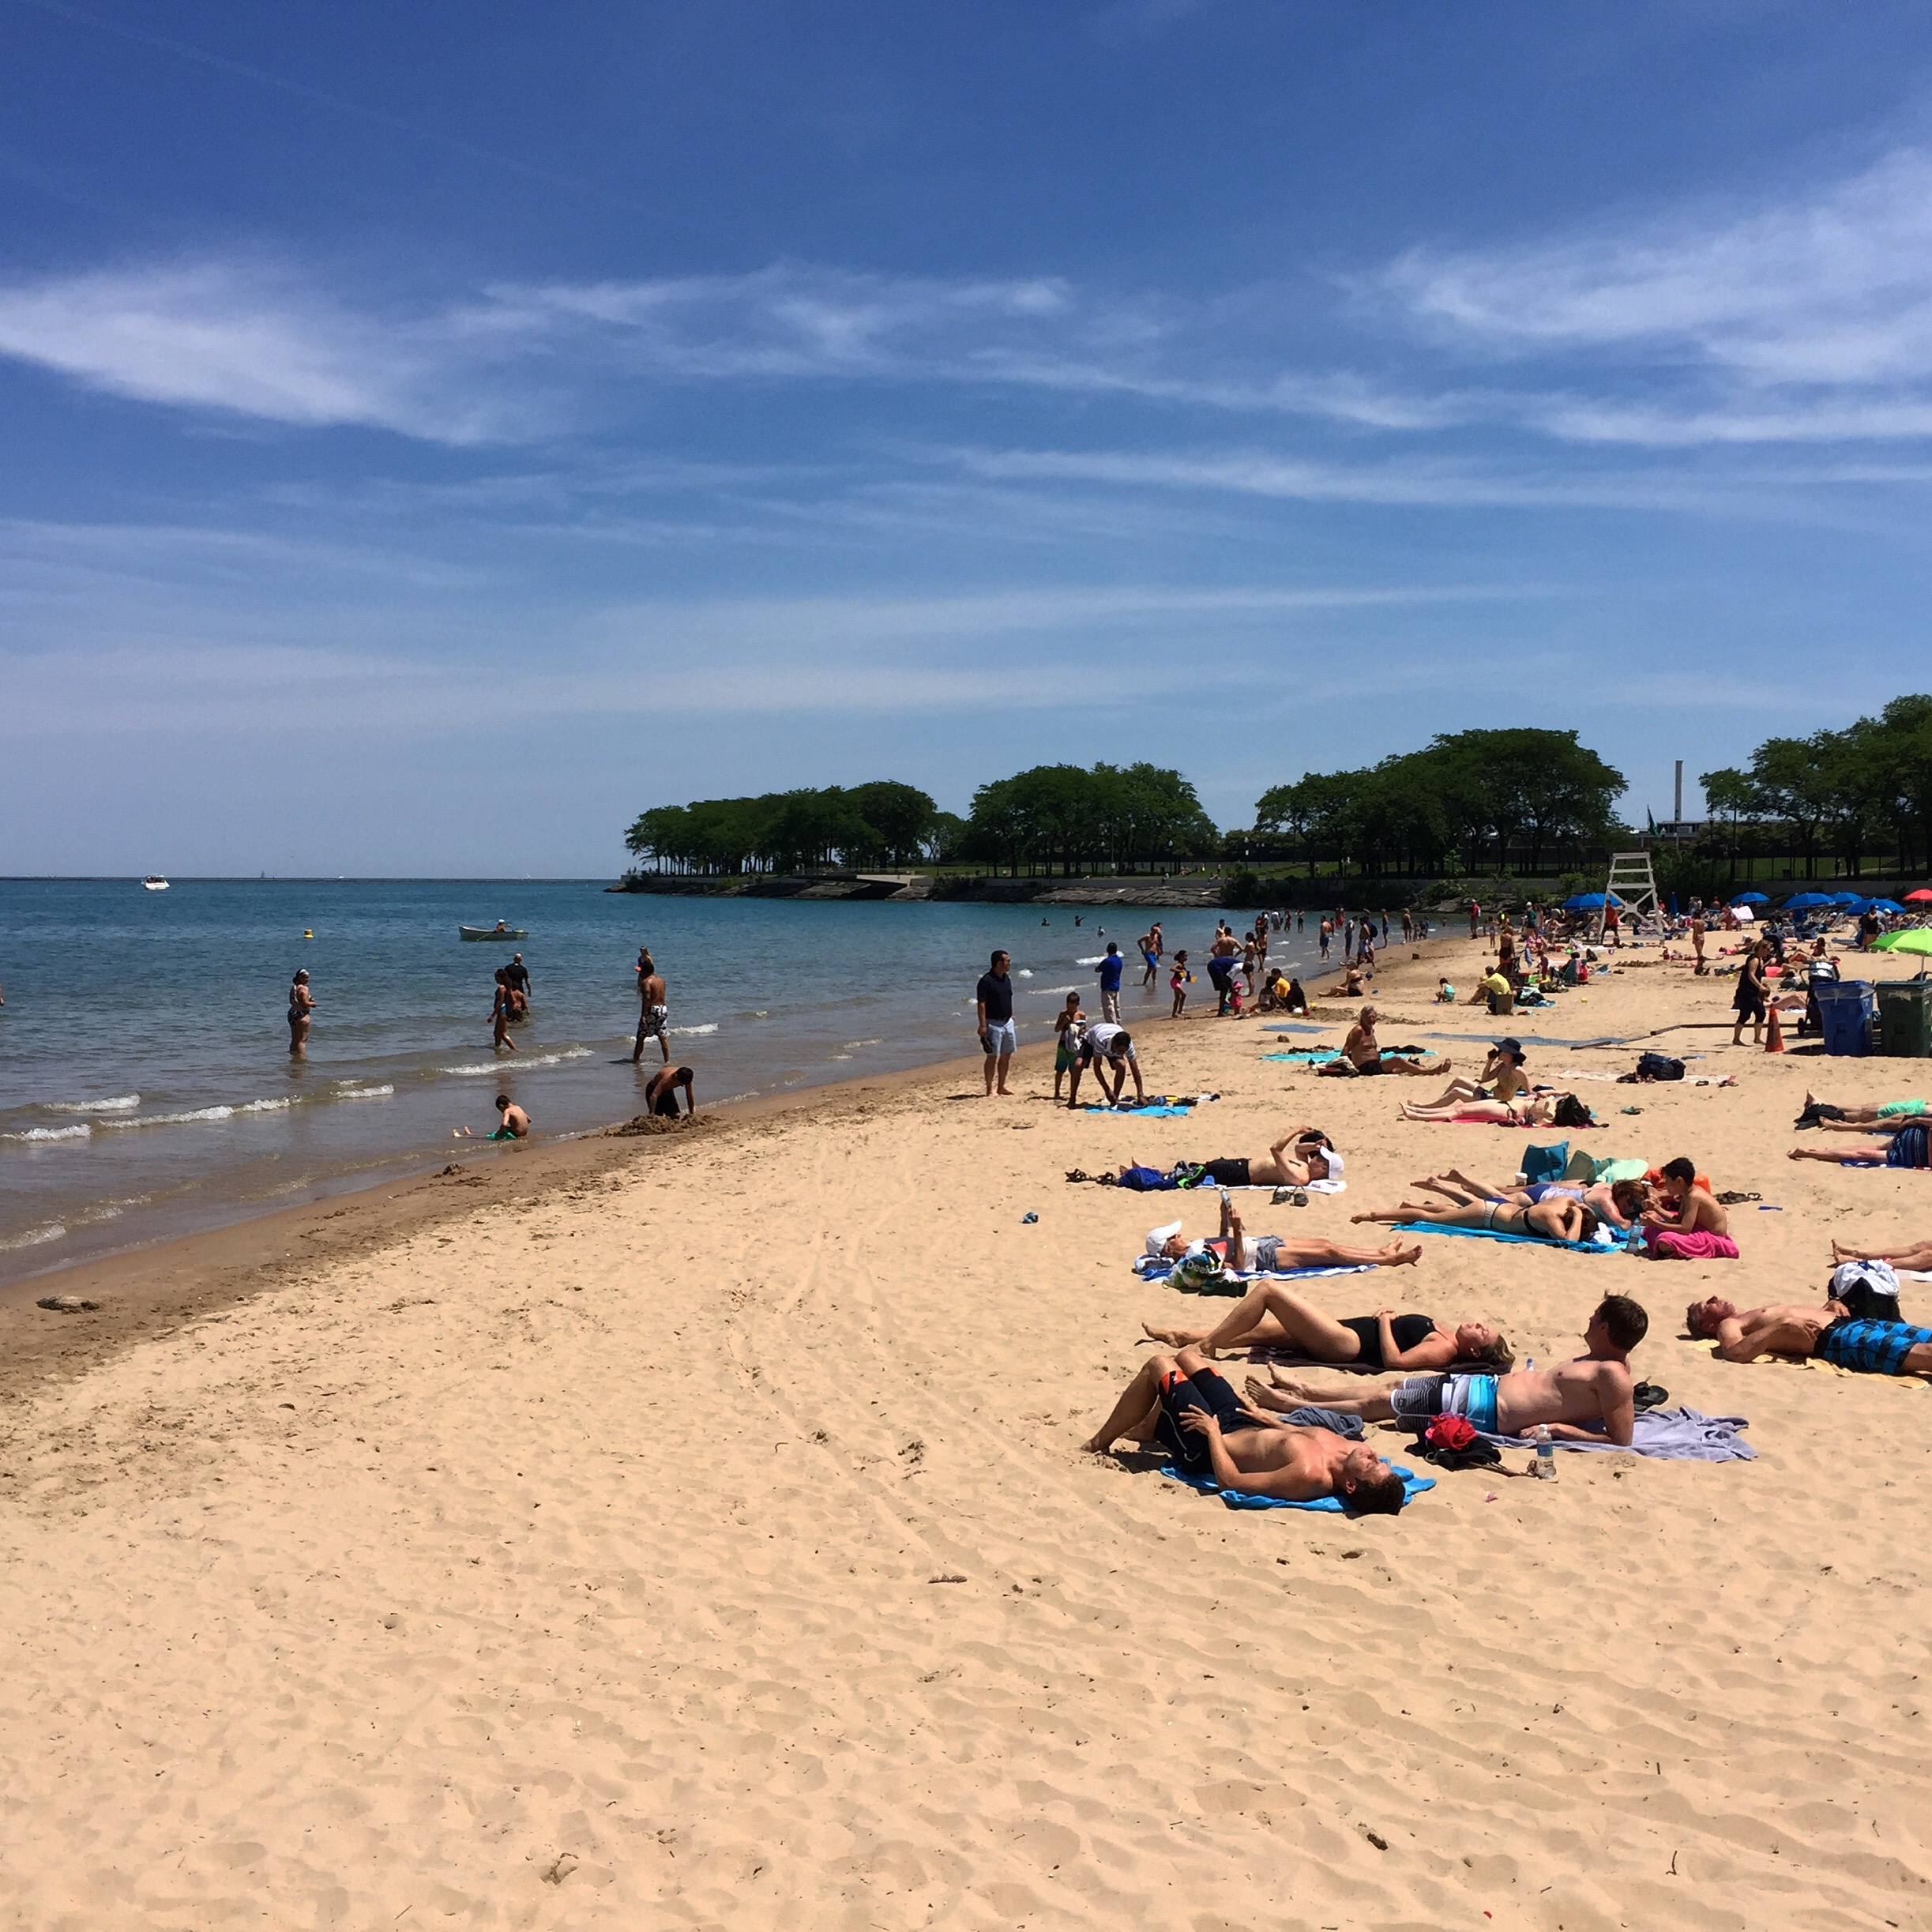 Ohio Street Beach in Chicago